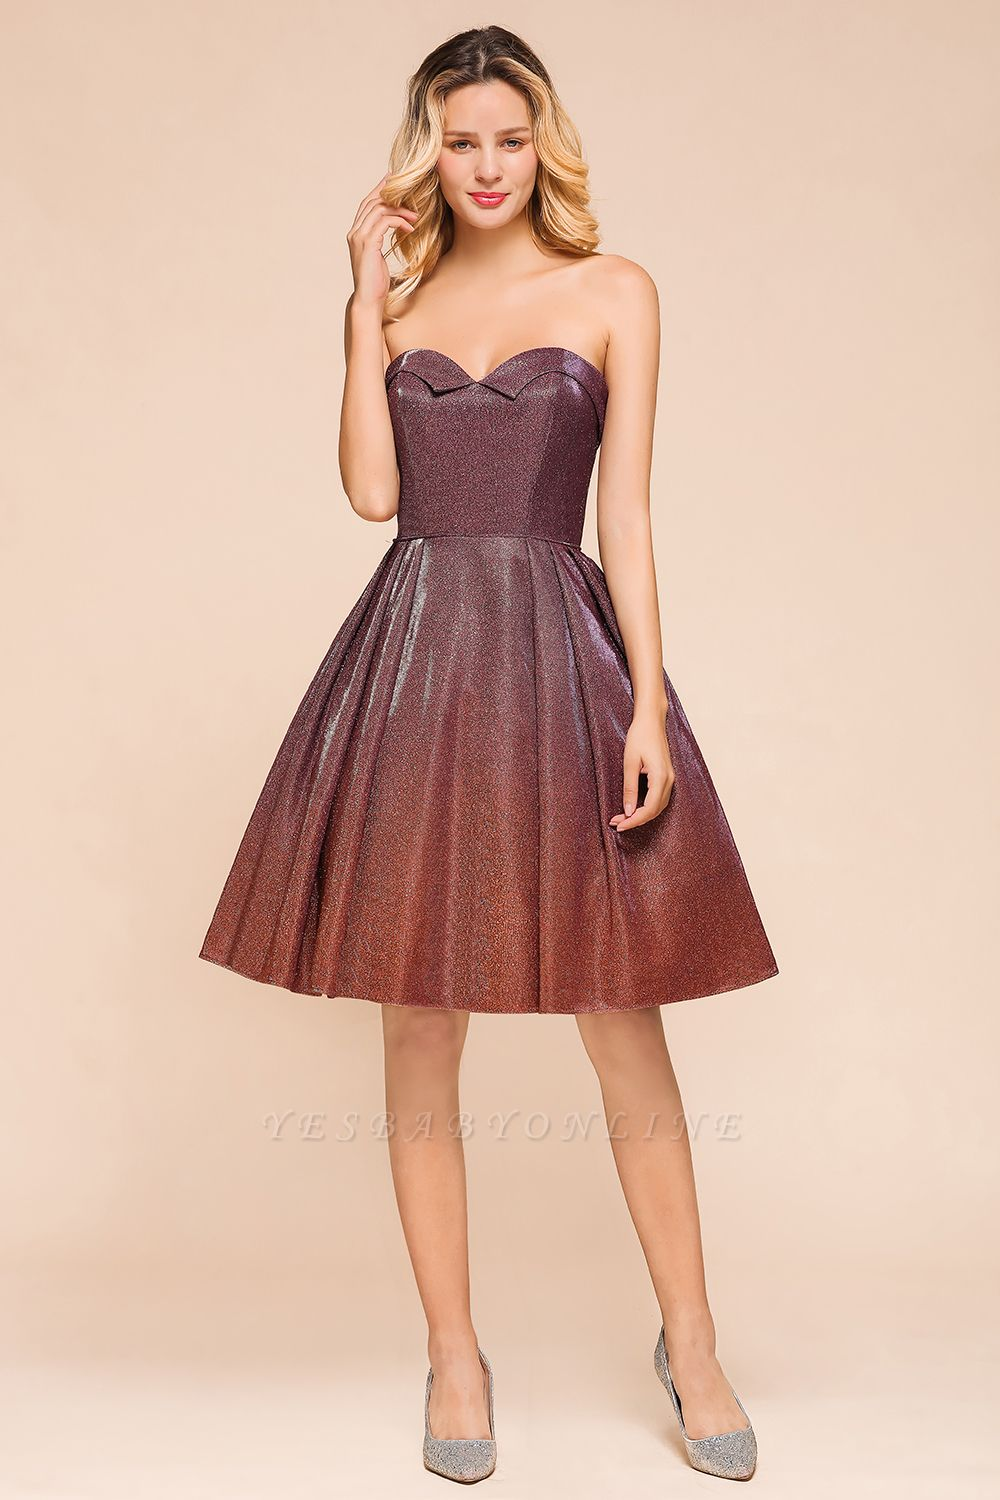 Sweetheart Sleeveless Backless Short A Line Homecoming Dresses | Cheap Cocktail Dresses